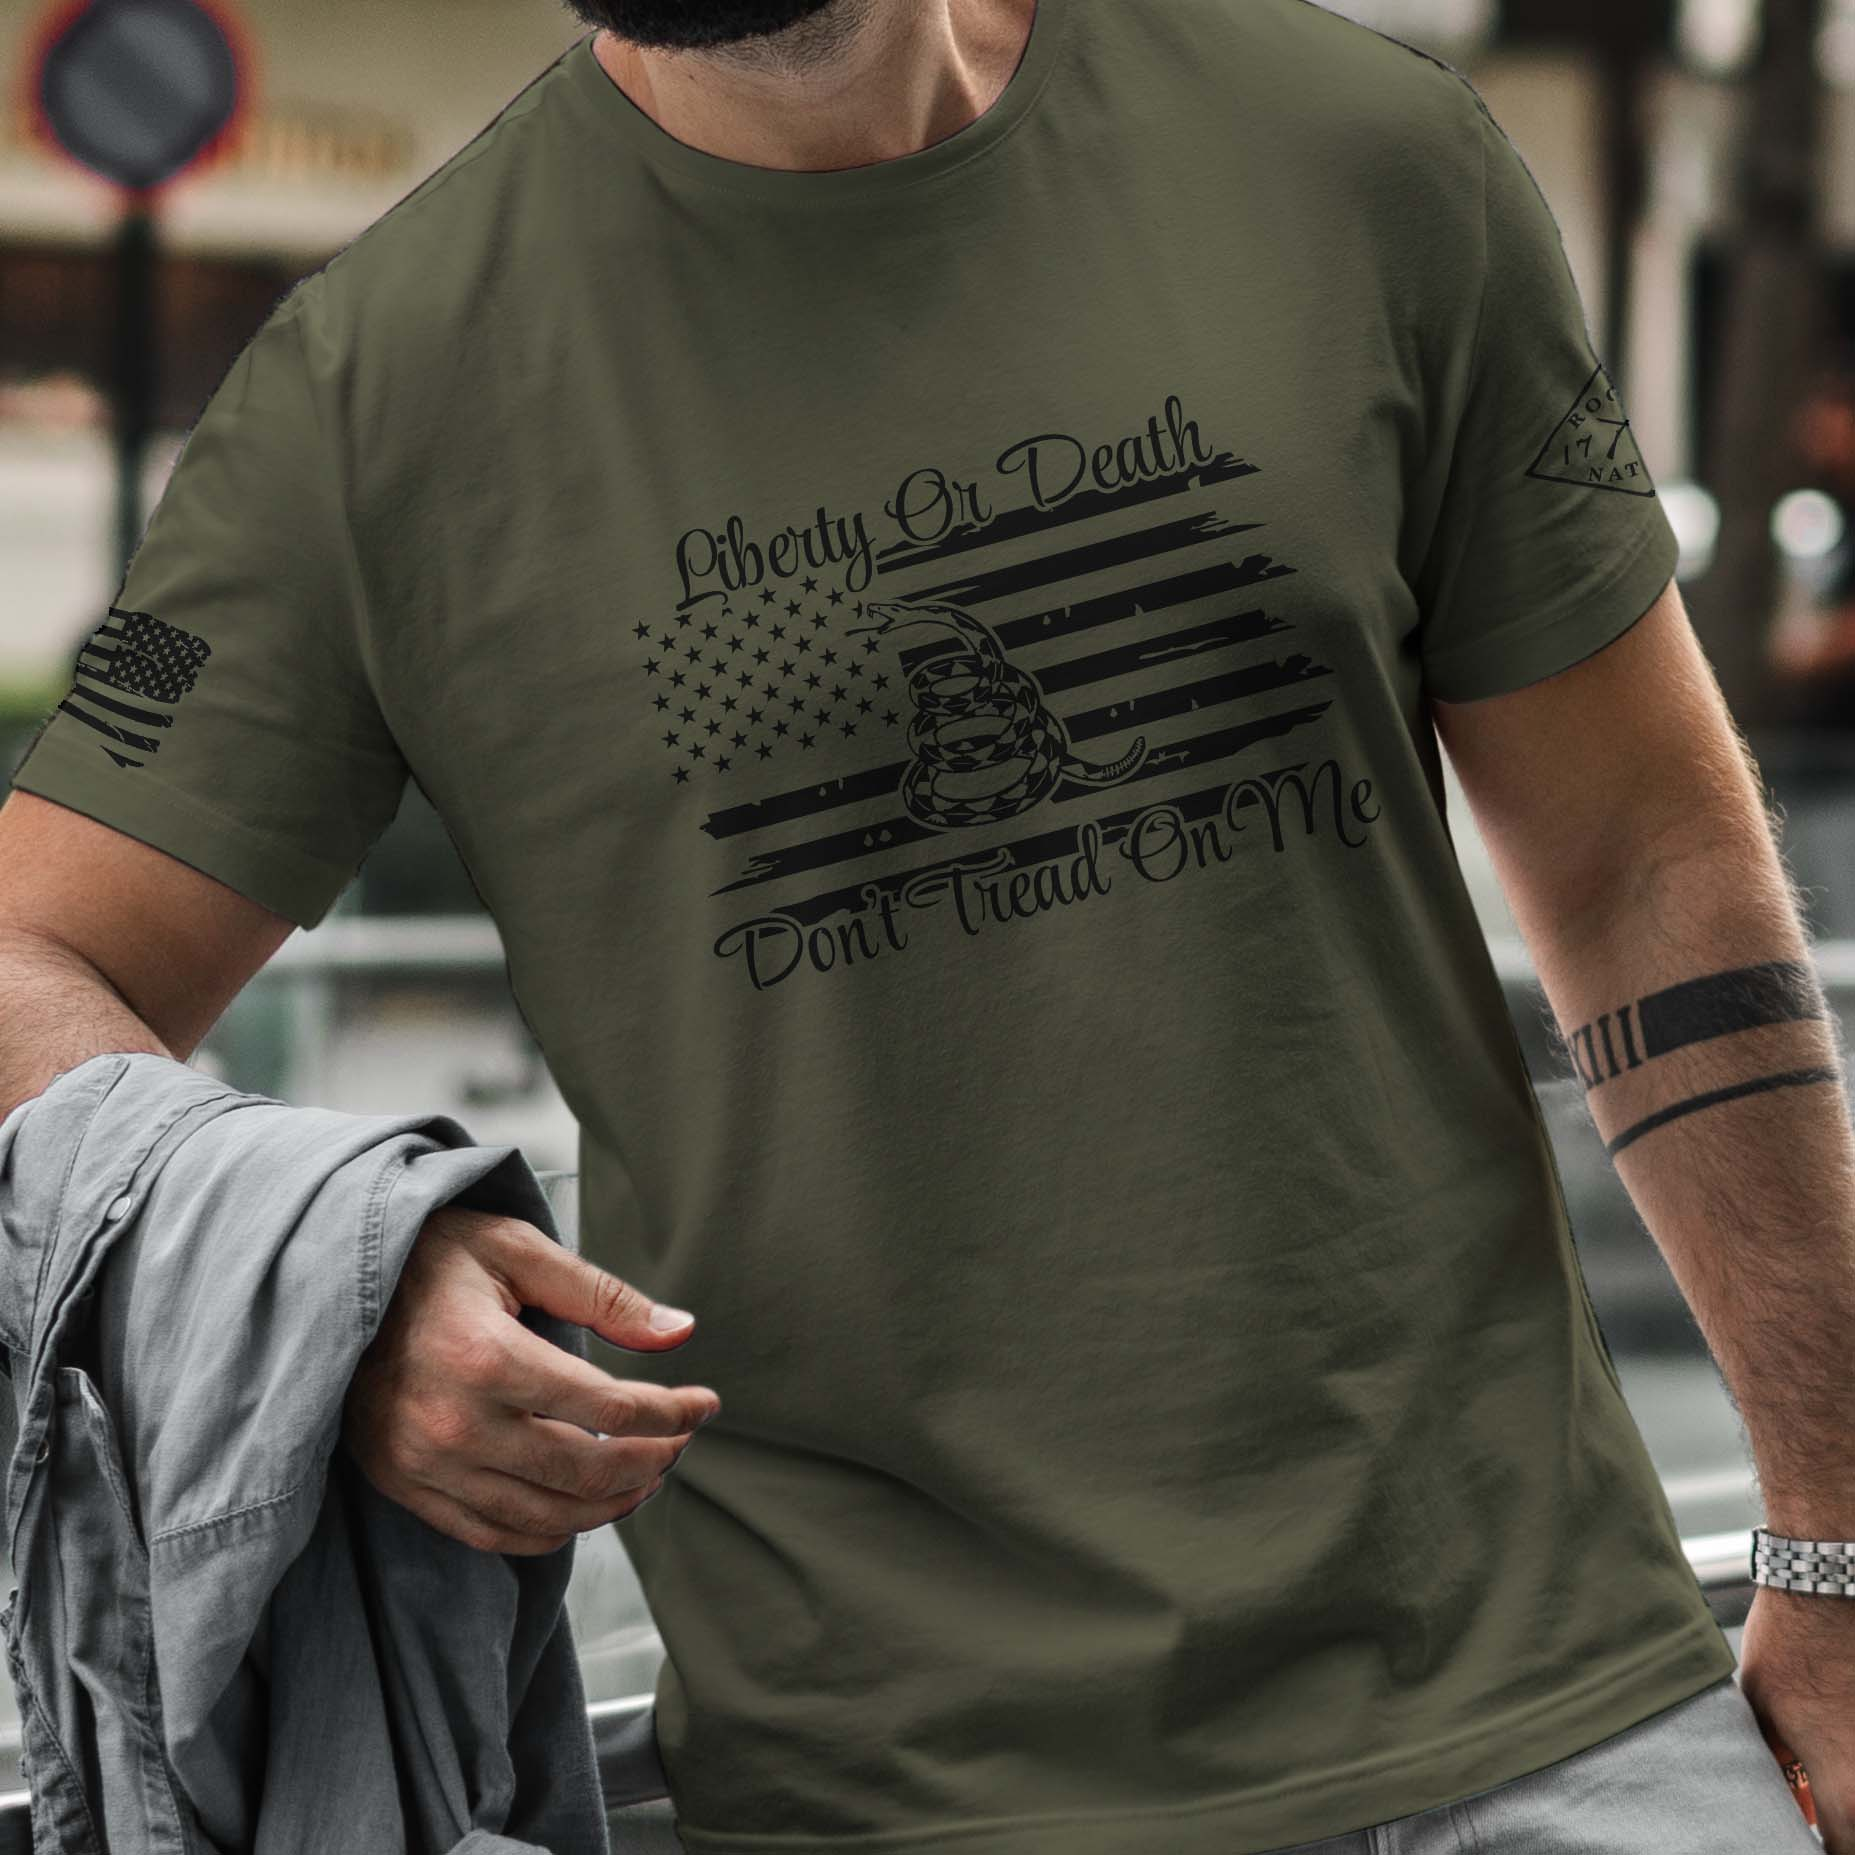 t-shirt with liberty or death on army men's